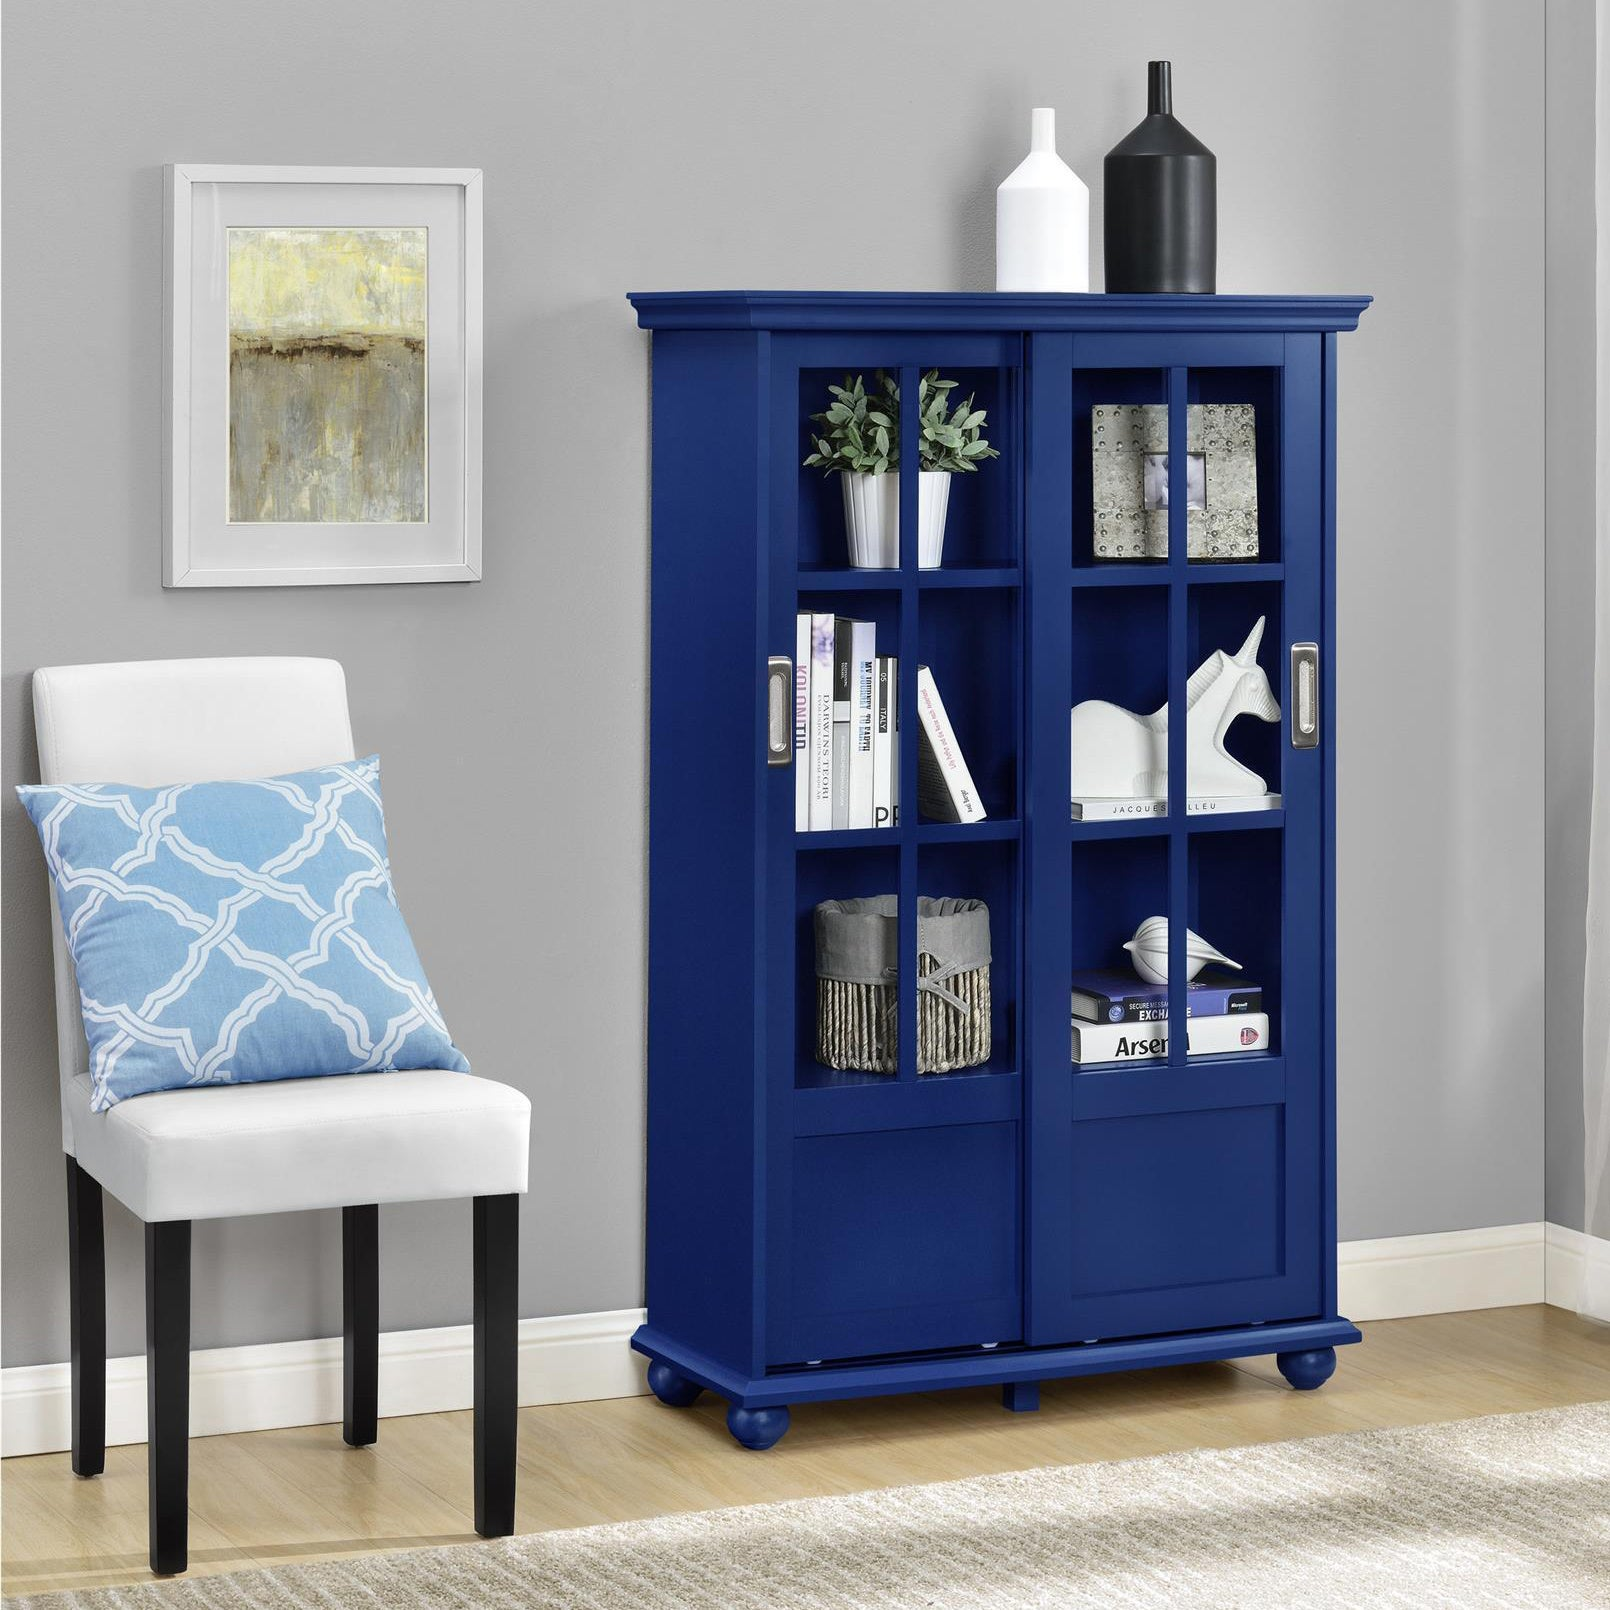 Ameriwood Home Aaron Lane Navy Bookcase with Sliding Glas...